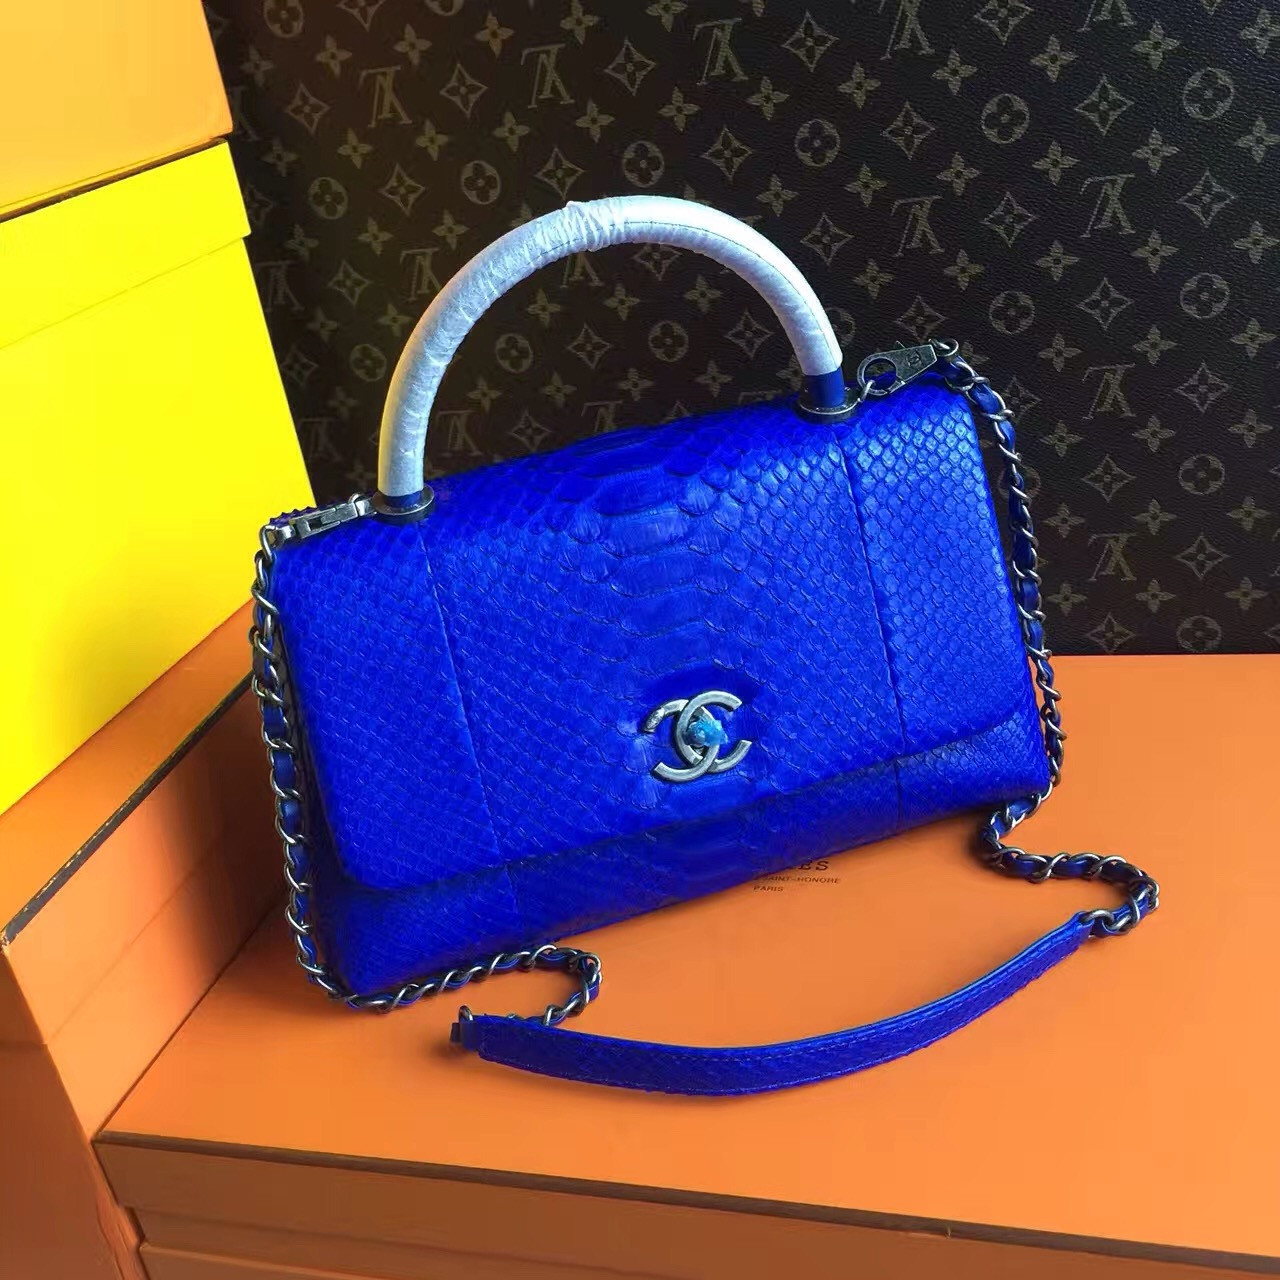 410584f6948f Chanel Electric Blue Python Lizard Top Handle Coco Handle Small Bag ...